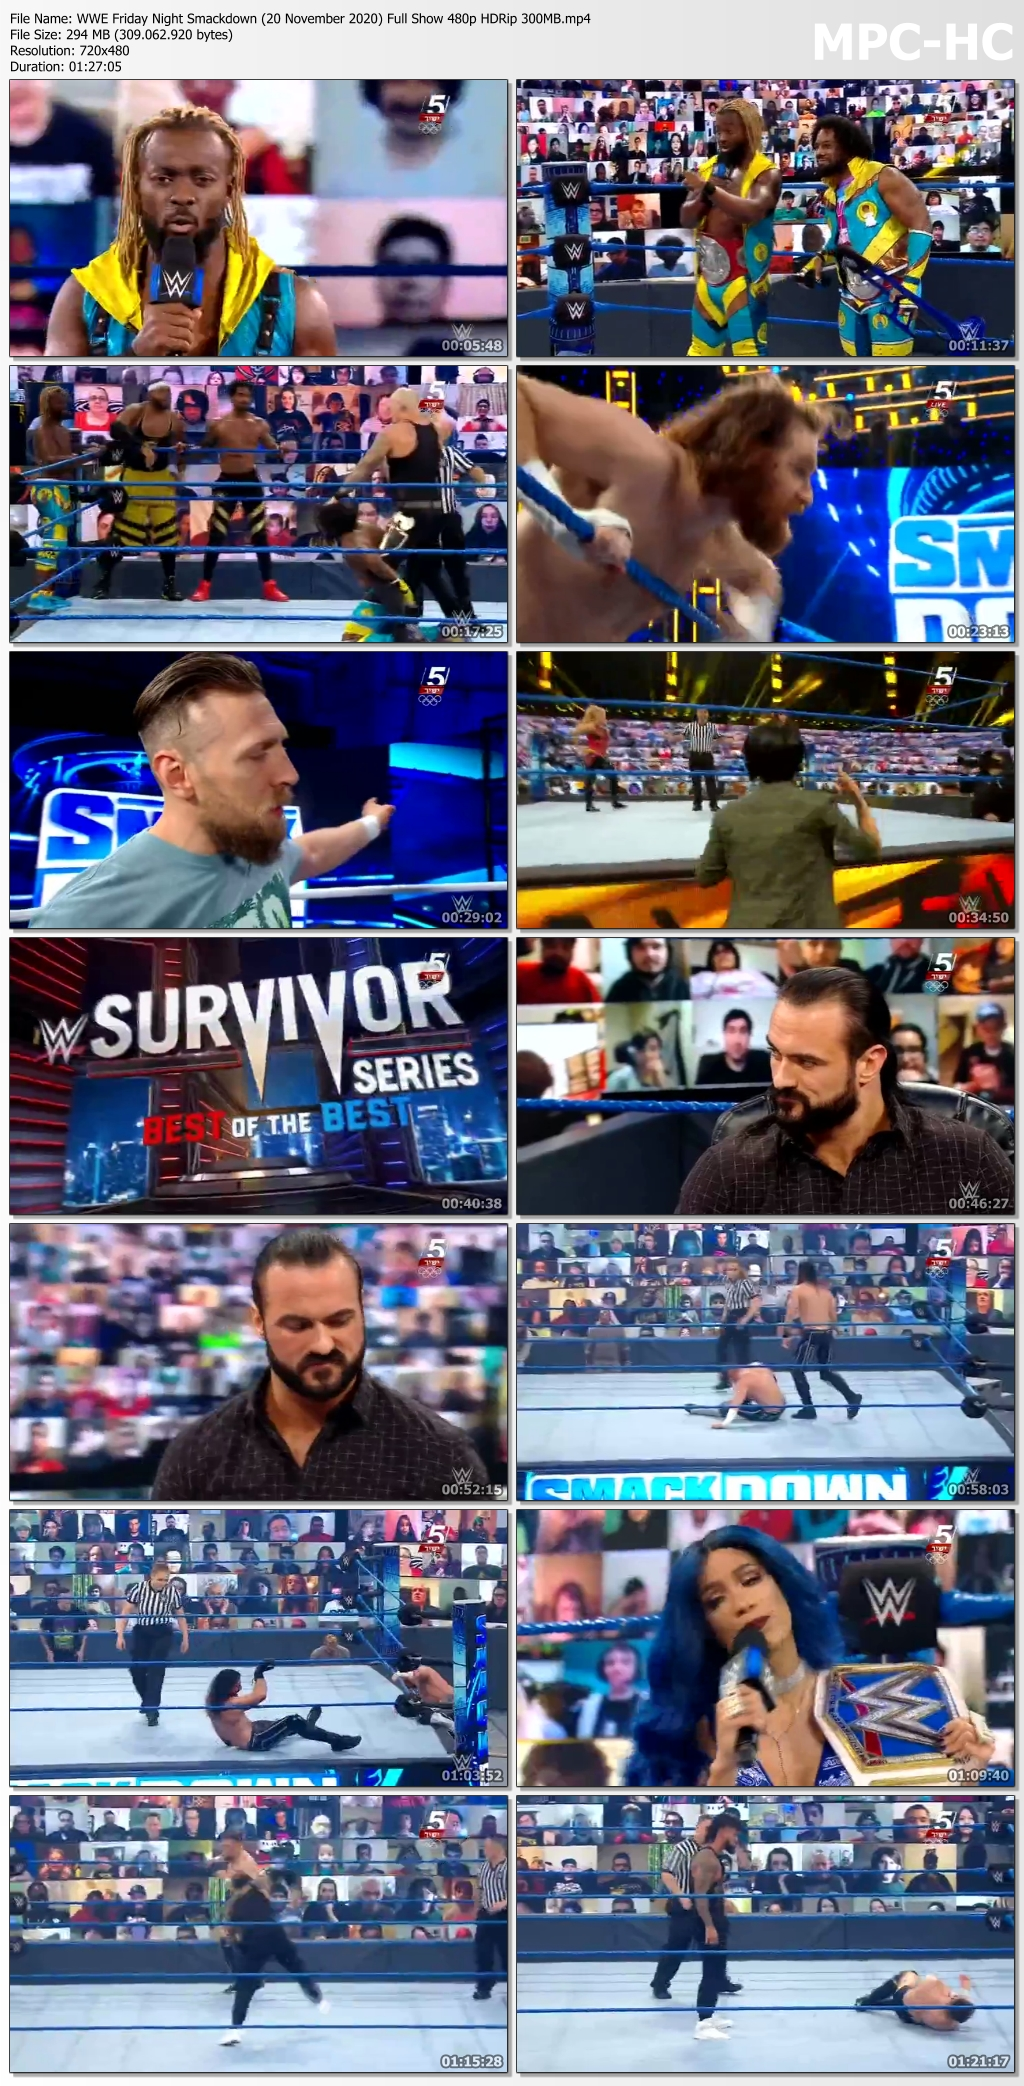 WWE-Friday-Night-Smackdown-20-November-2020-Full-Show-480p-HDRip-300-MB-mp4-thumbs